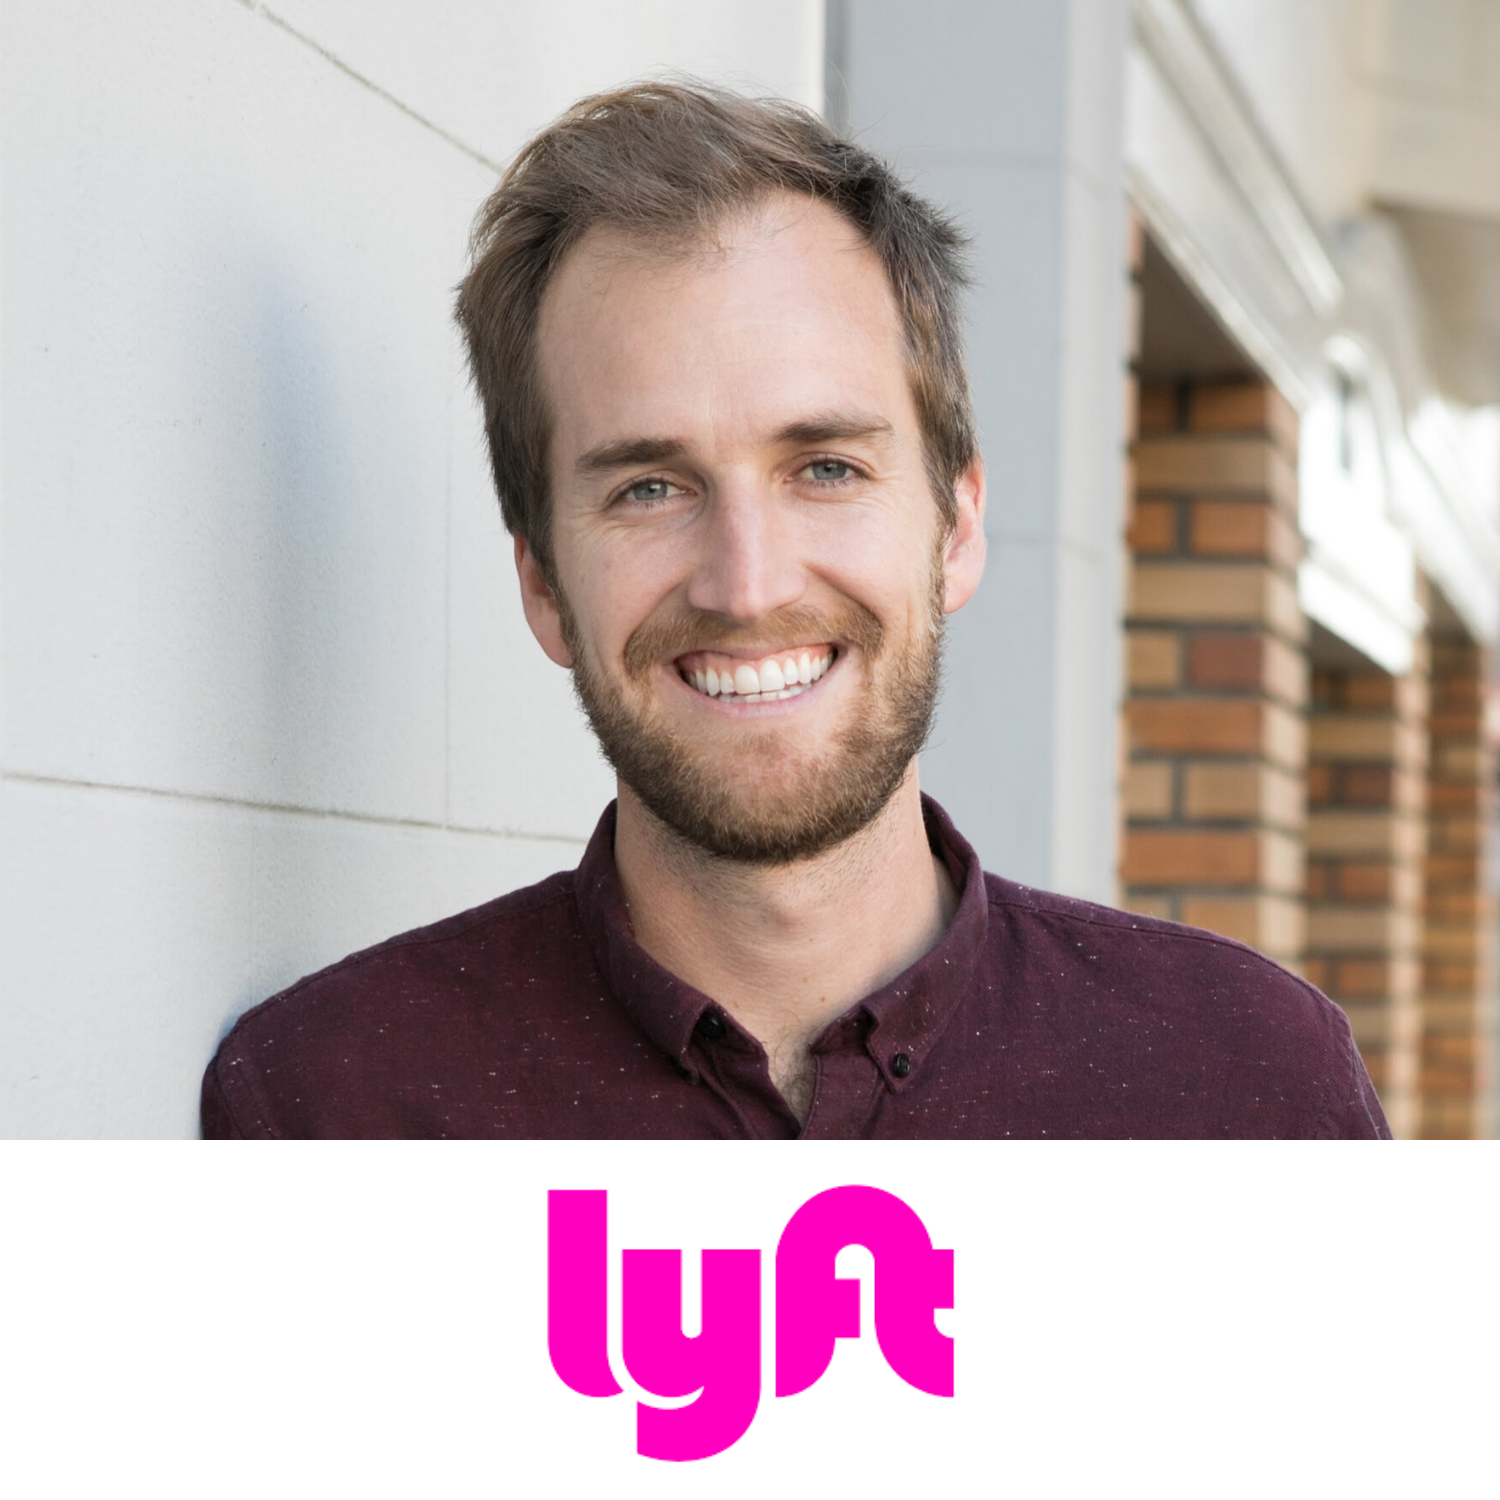 Eric Burdullis, VP of Customer Experience, Lyft